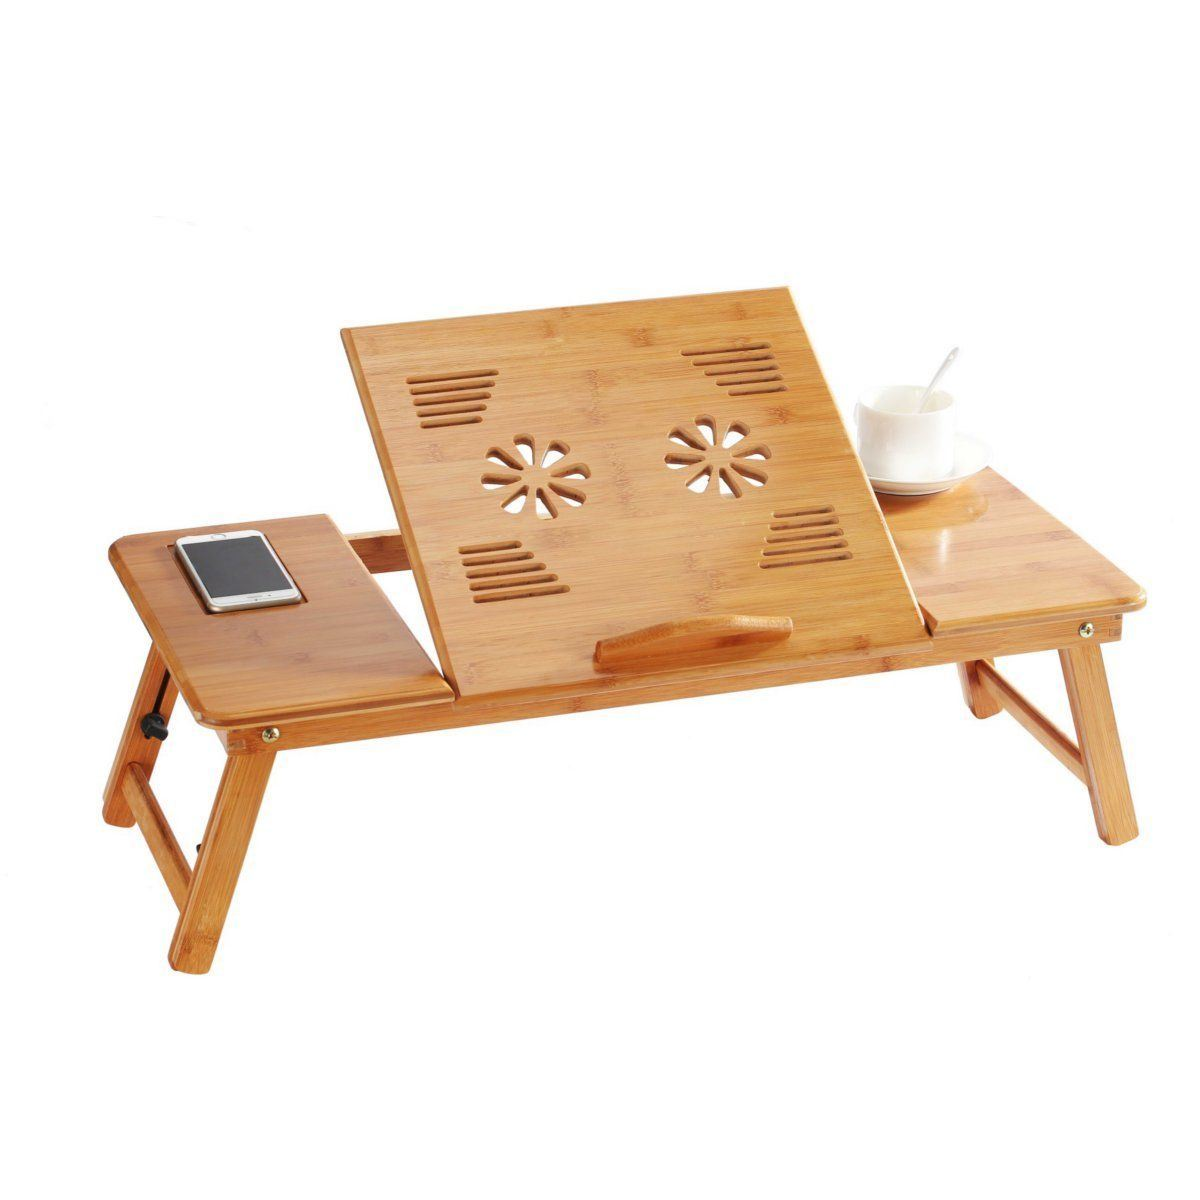 70cm Foldable Folding Lap Desk Bamboo Laptop Bed Table Stand Tray Desk Adjustablebt 2204 China Serving Tray Ventilation Holes Made In China Com